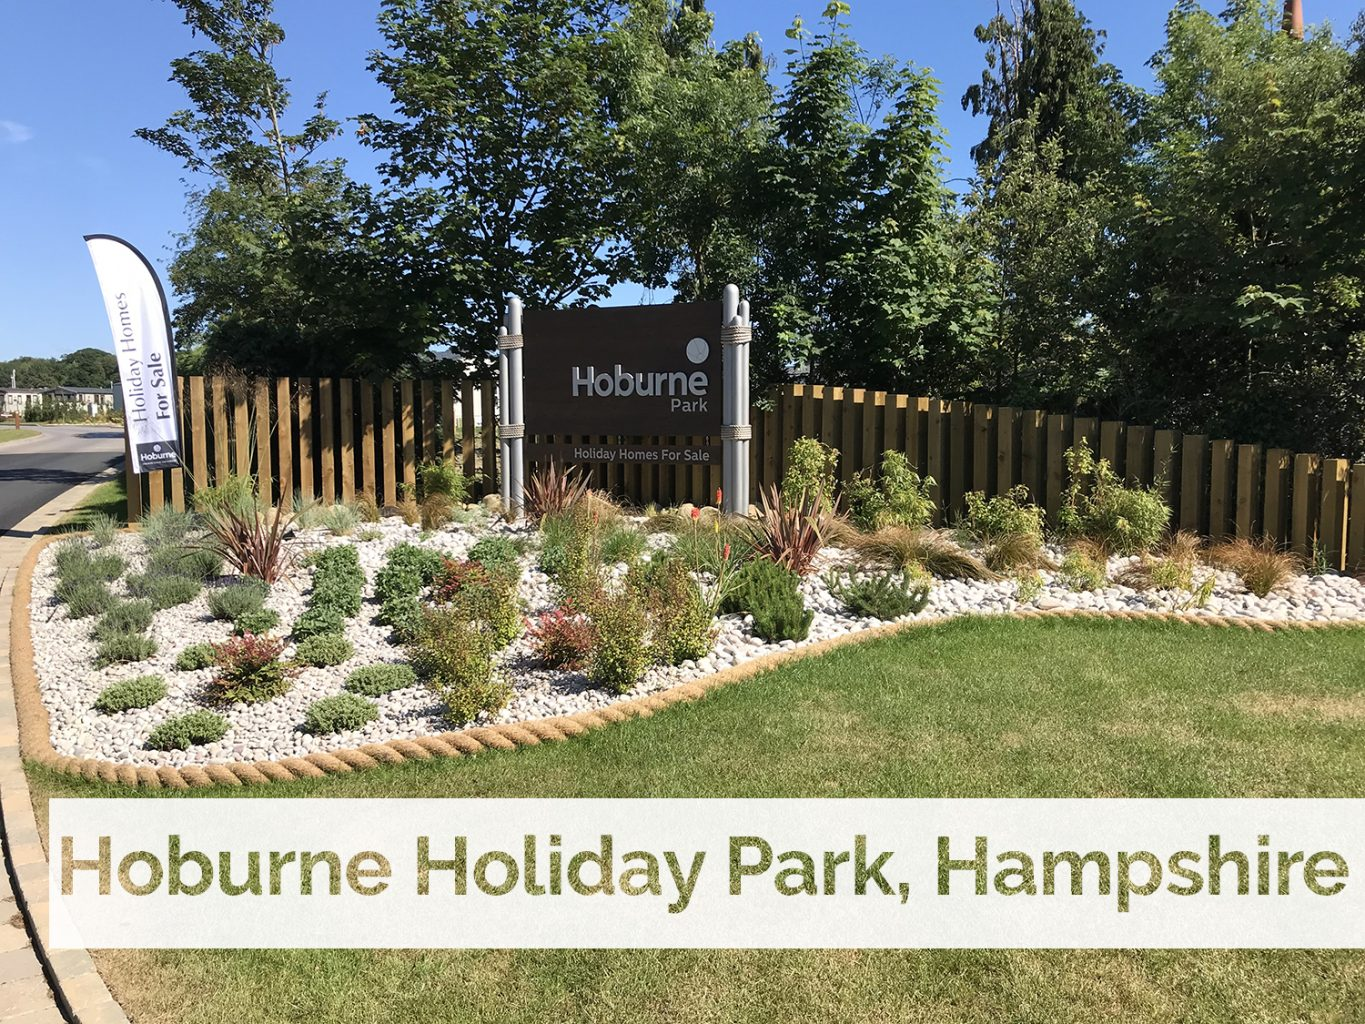 Recent plant supply makes happy holidays at Hoburne Naish Holiday Park